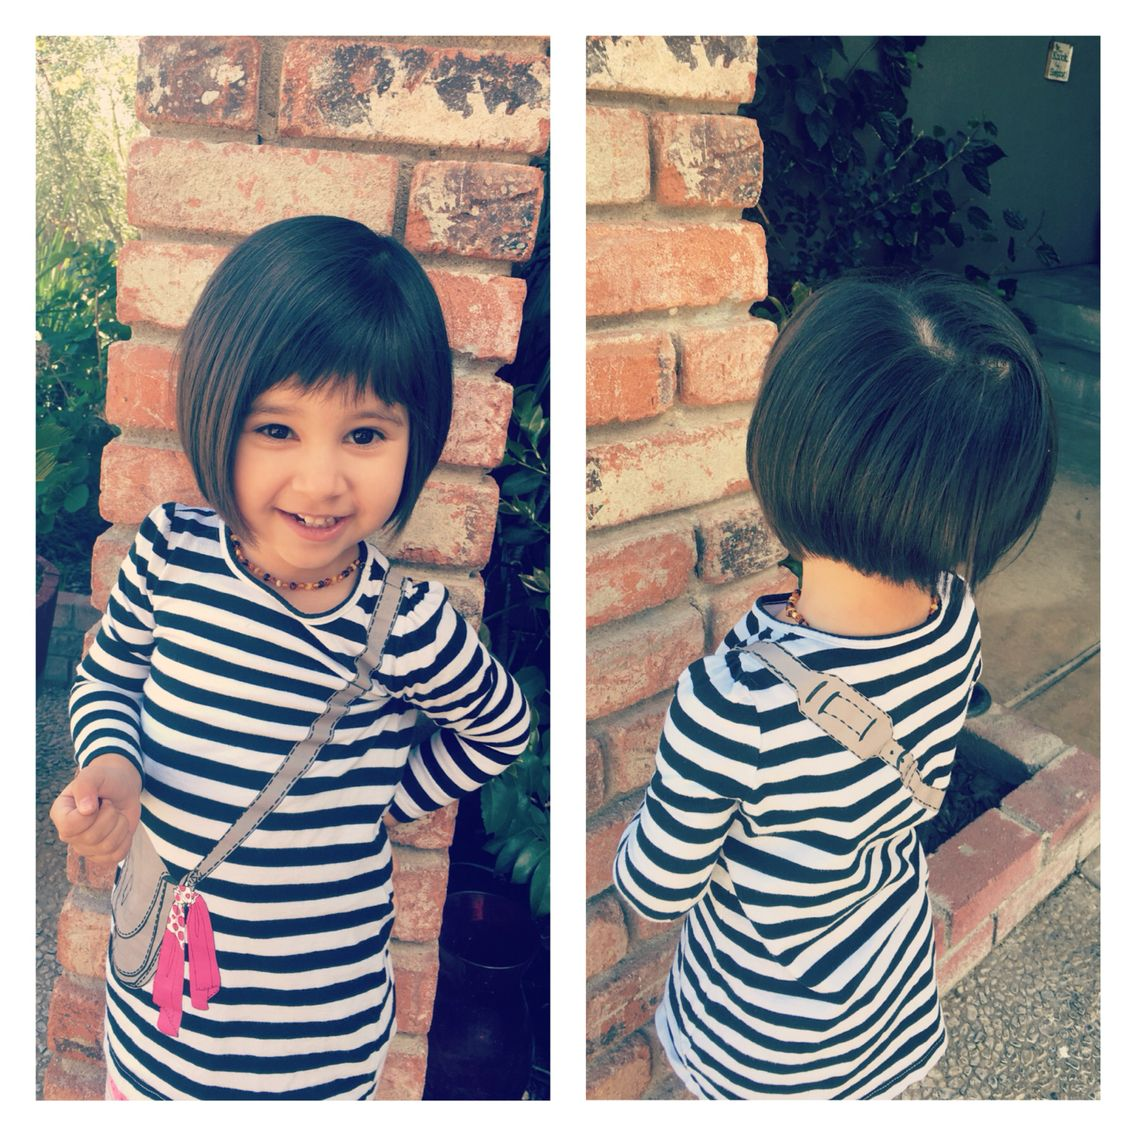 Toddler Bobs Are The Cutest Little Girl Bob Haircut Little Girl Hairstyles Little Girl Haircuts